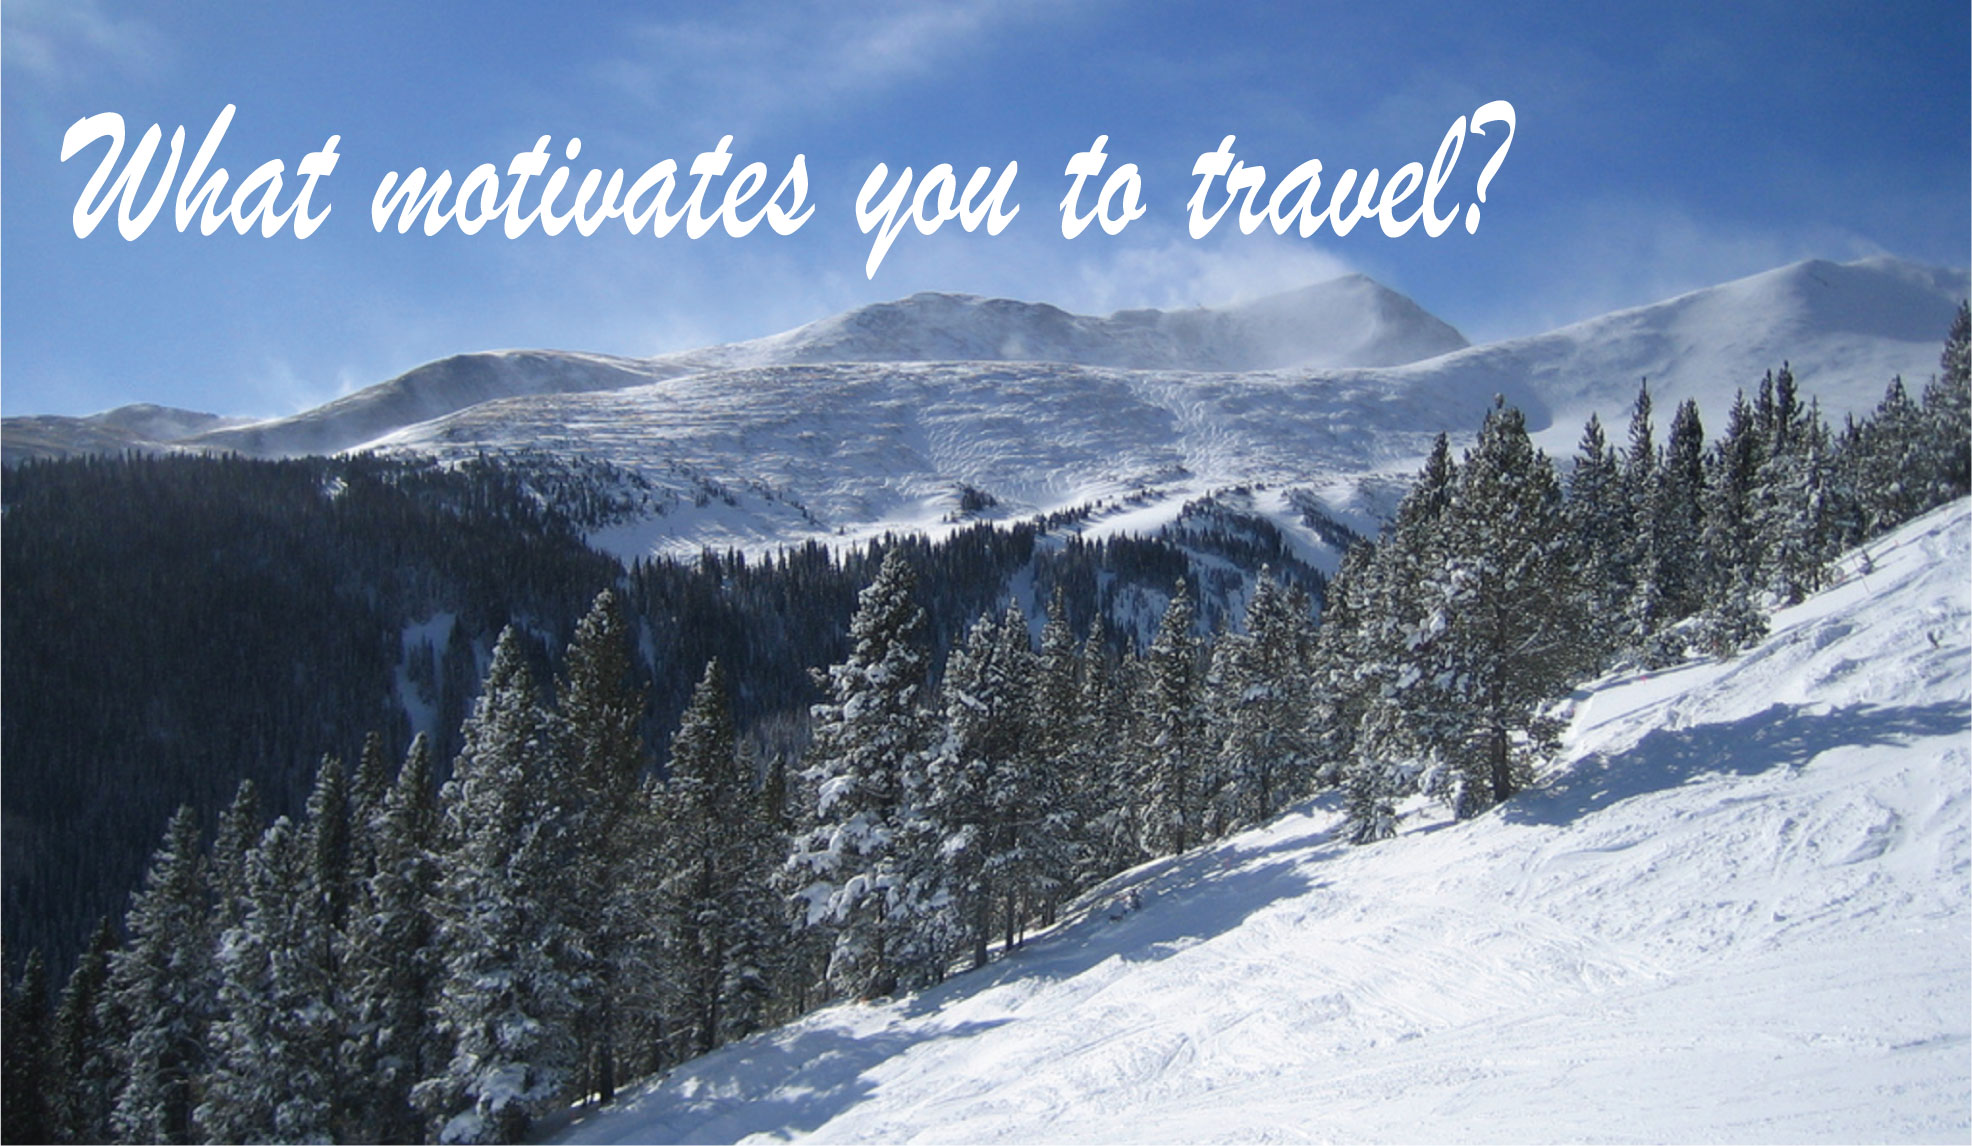 what motivates you to travel poplar travels jan 30 2017